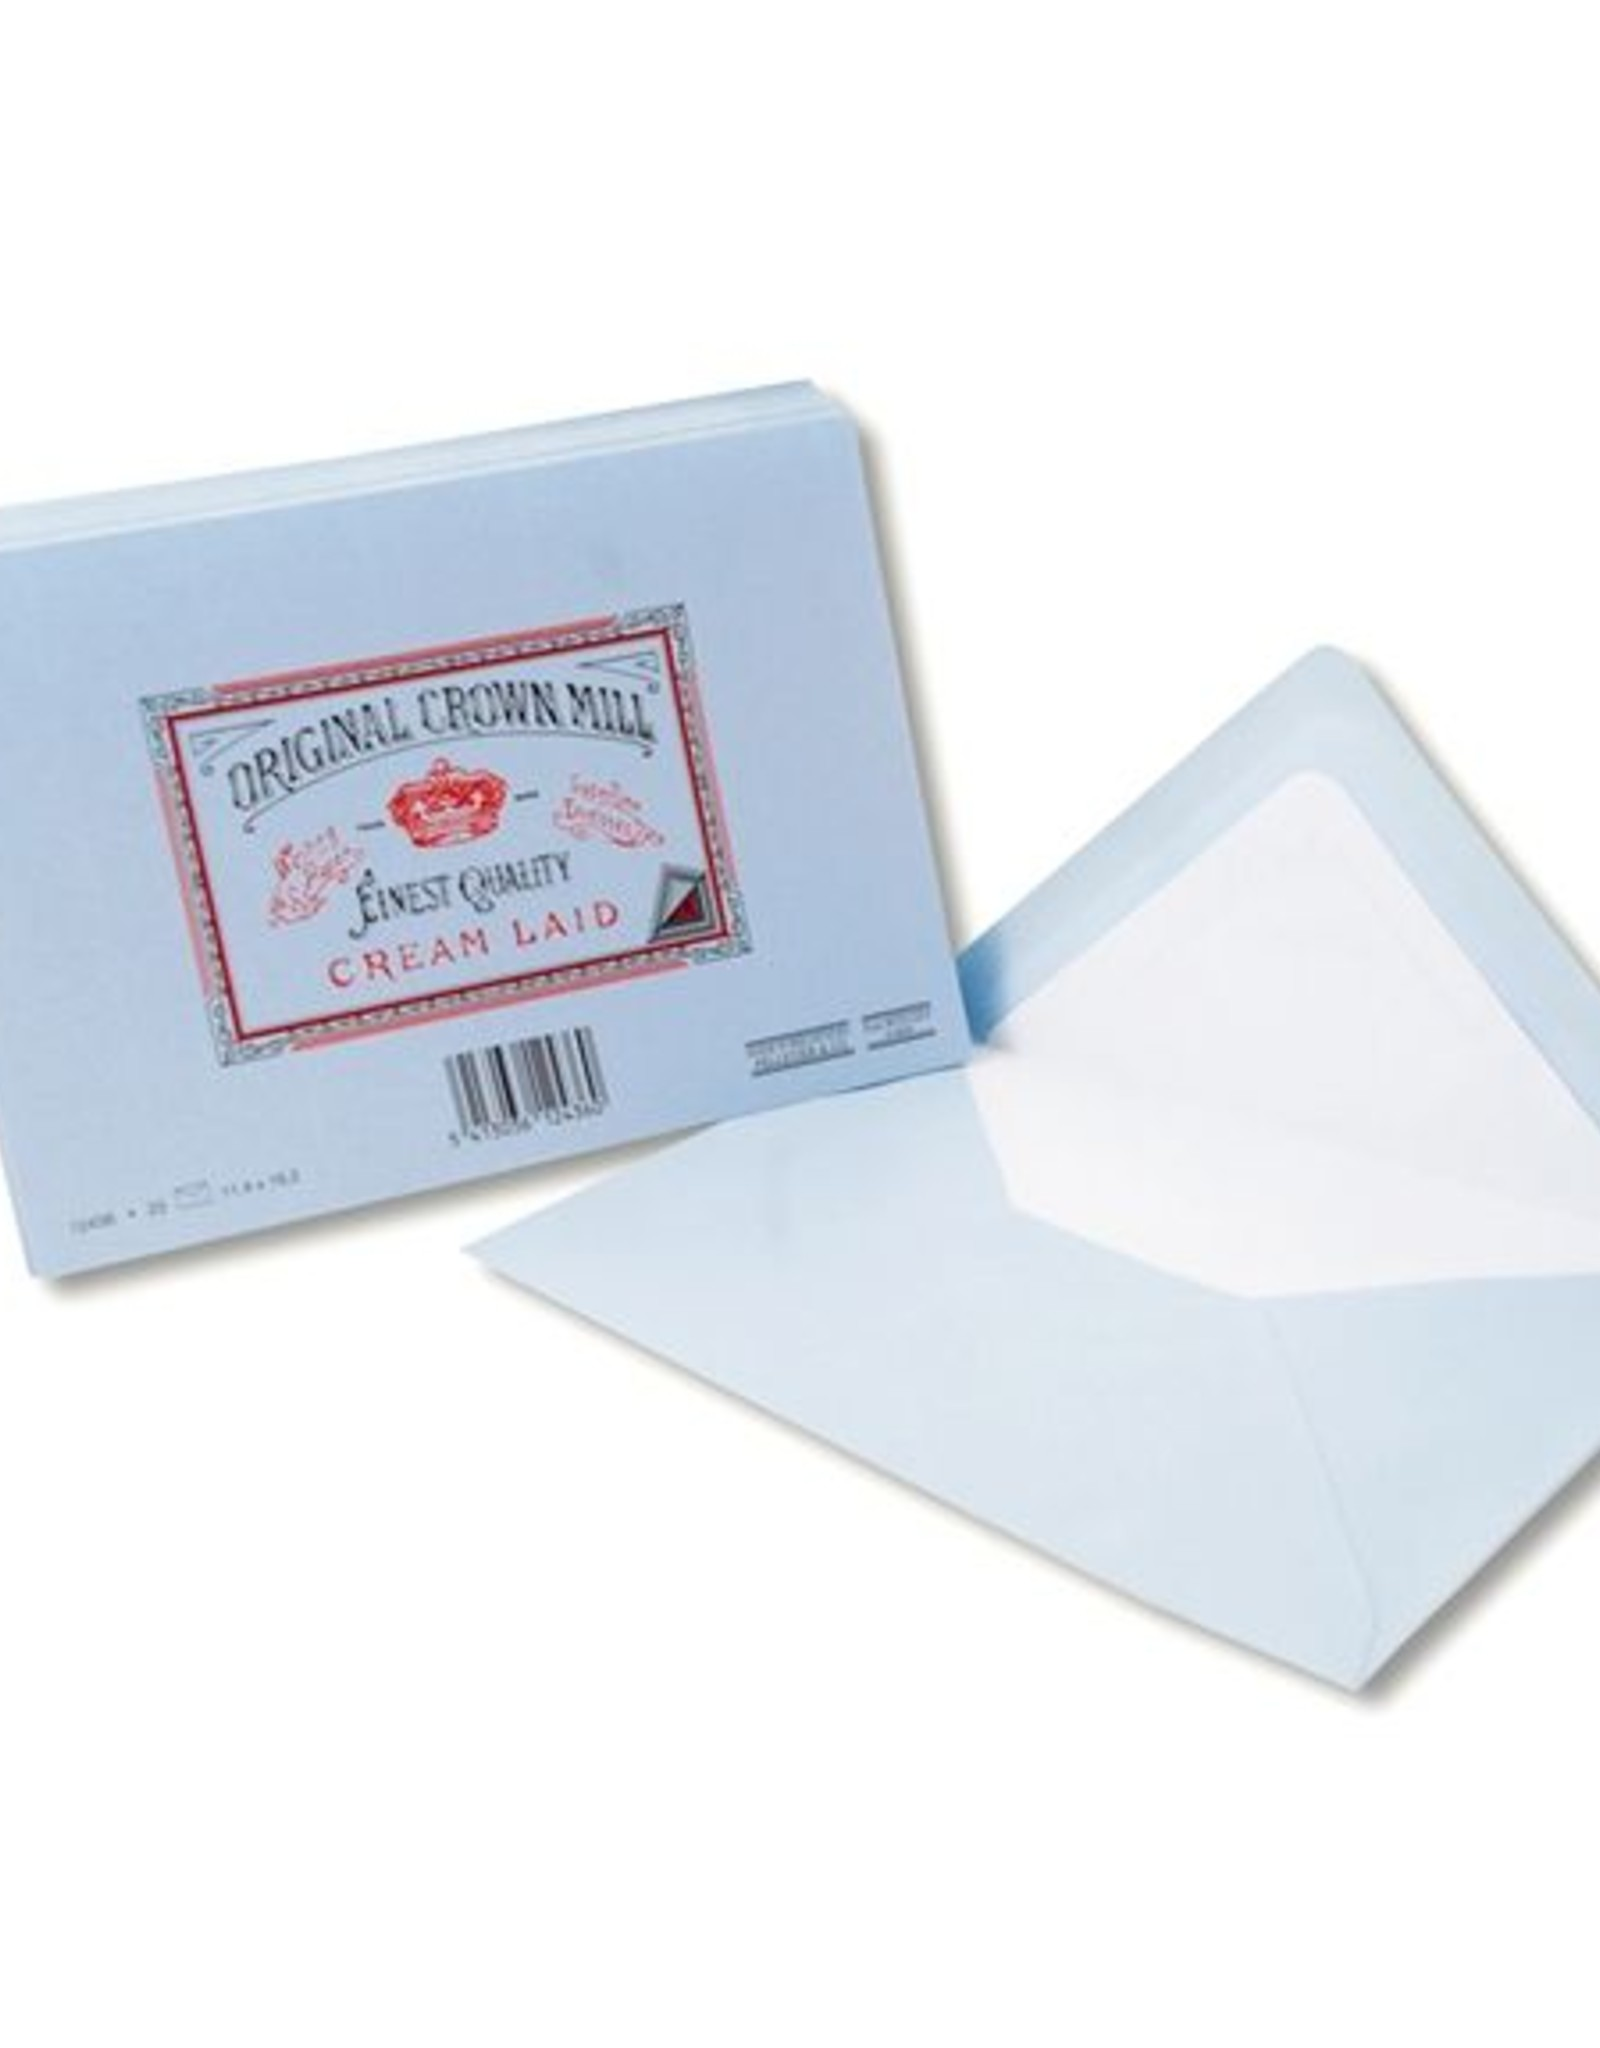 Original Crown Mill Classic Envelope A5 4.5 x 6.25